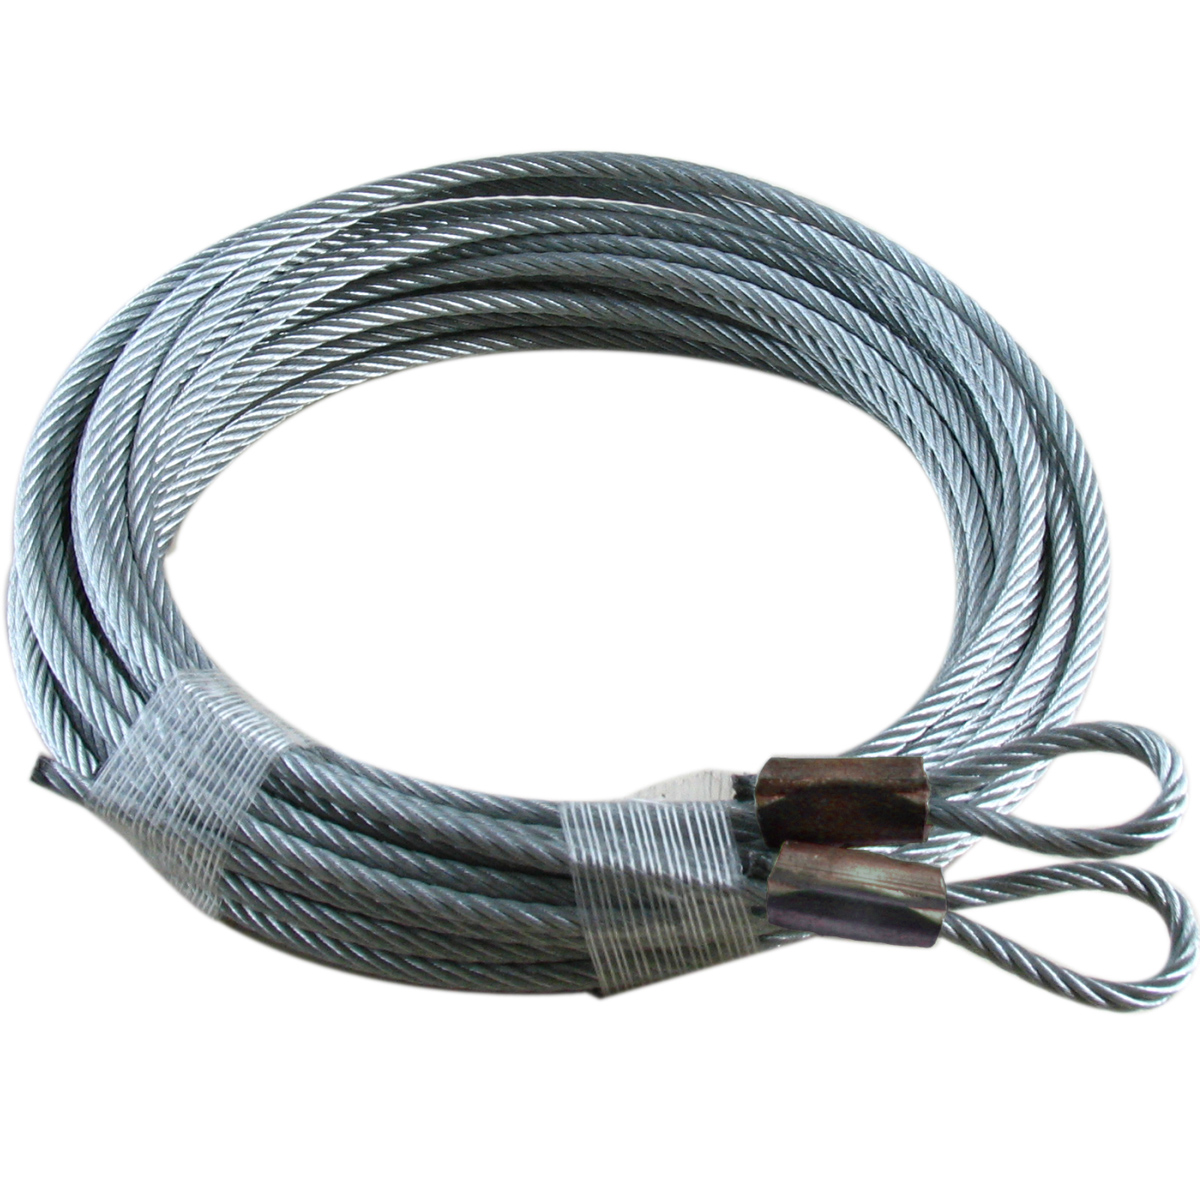 Garage Door Extension Cables